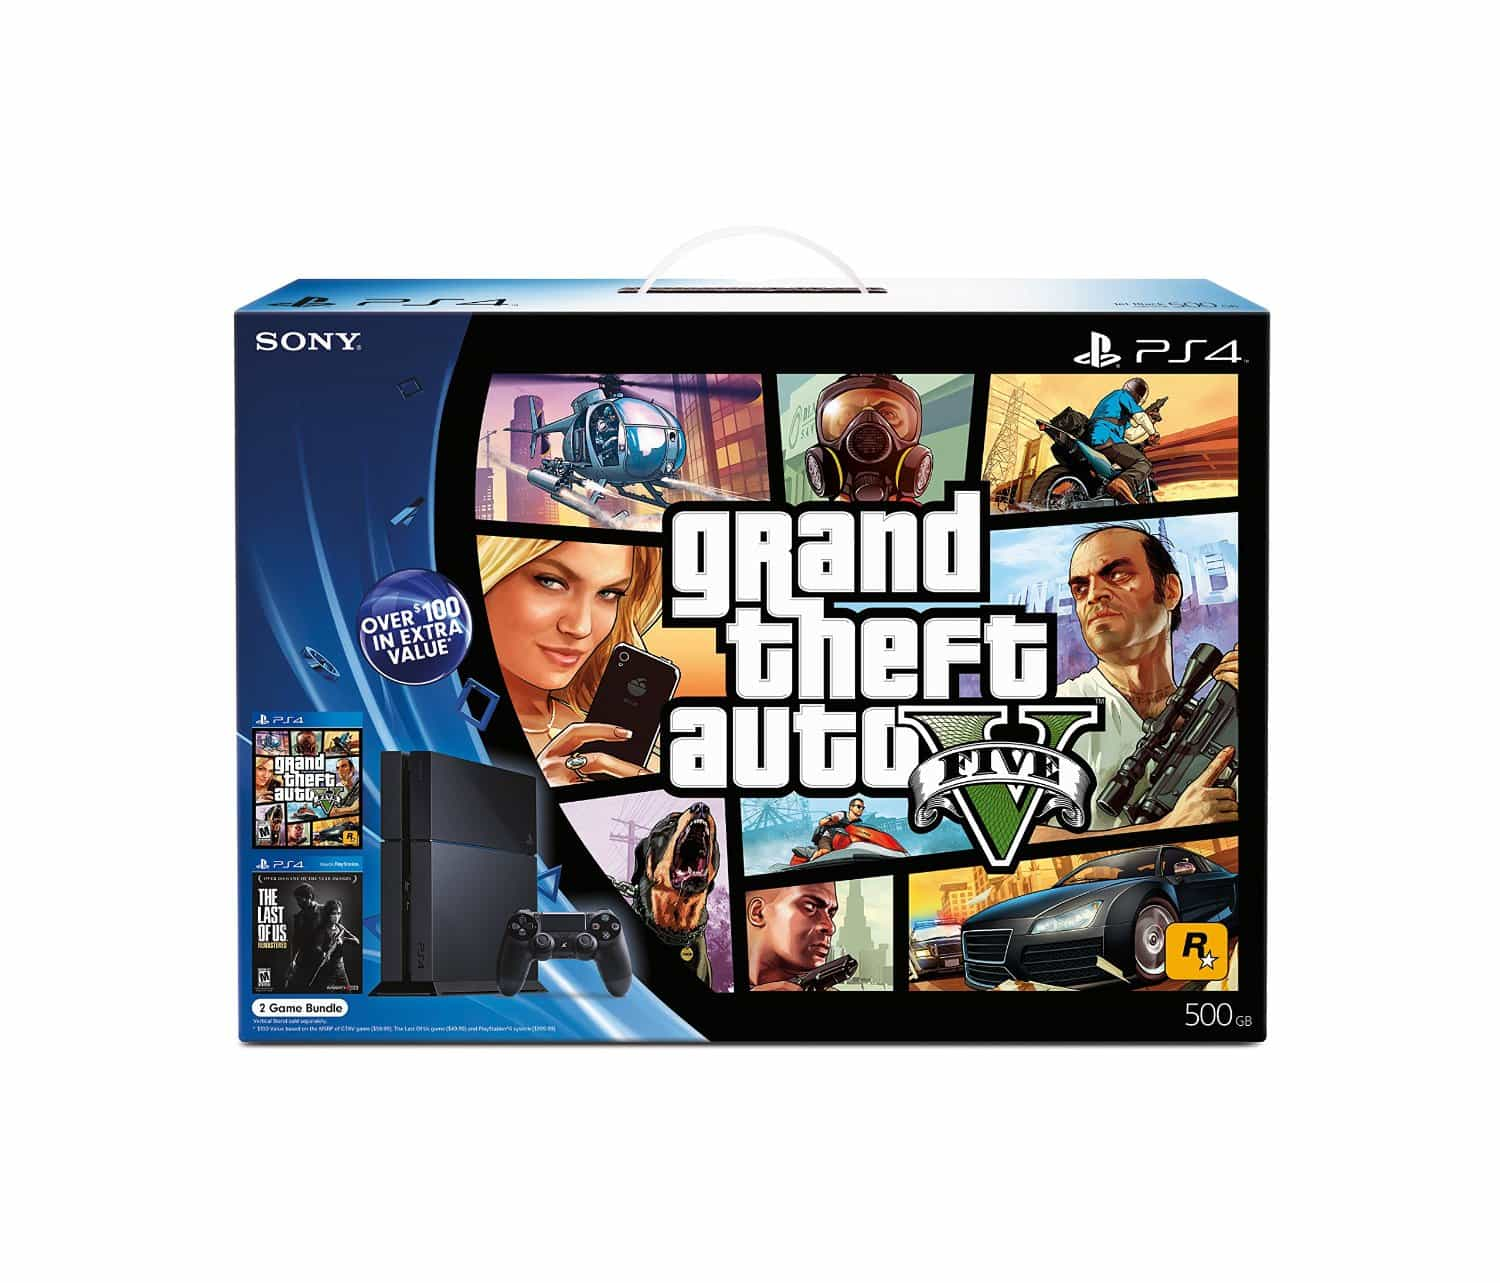 GTA V PS4 Bundle Discounted On Amazon - GTA BOOM